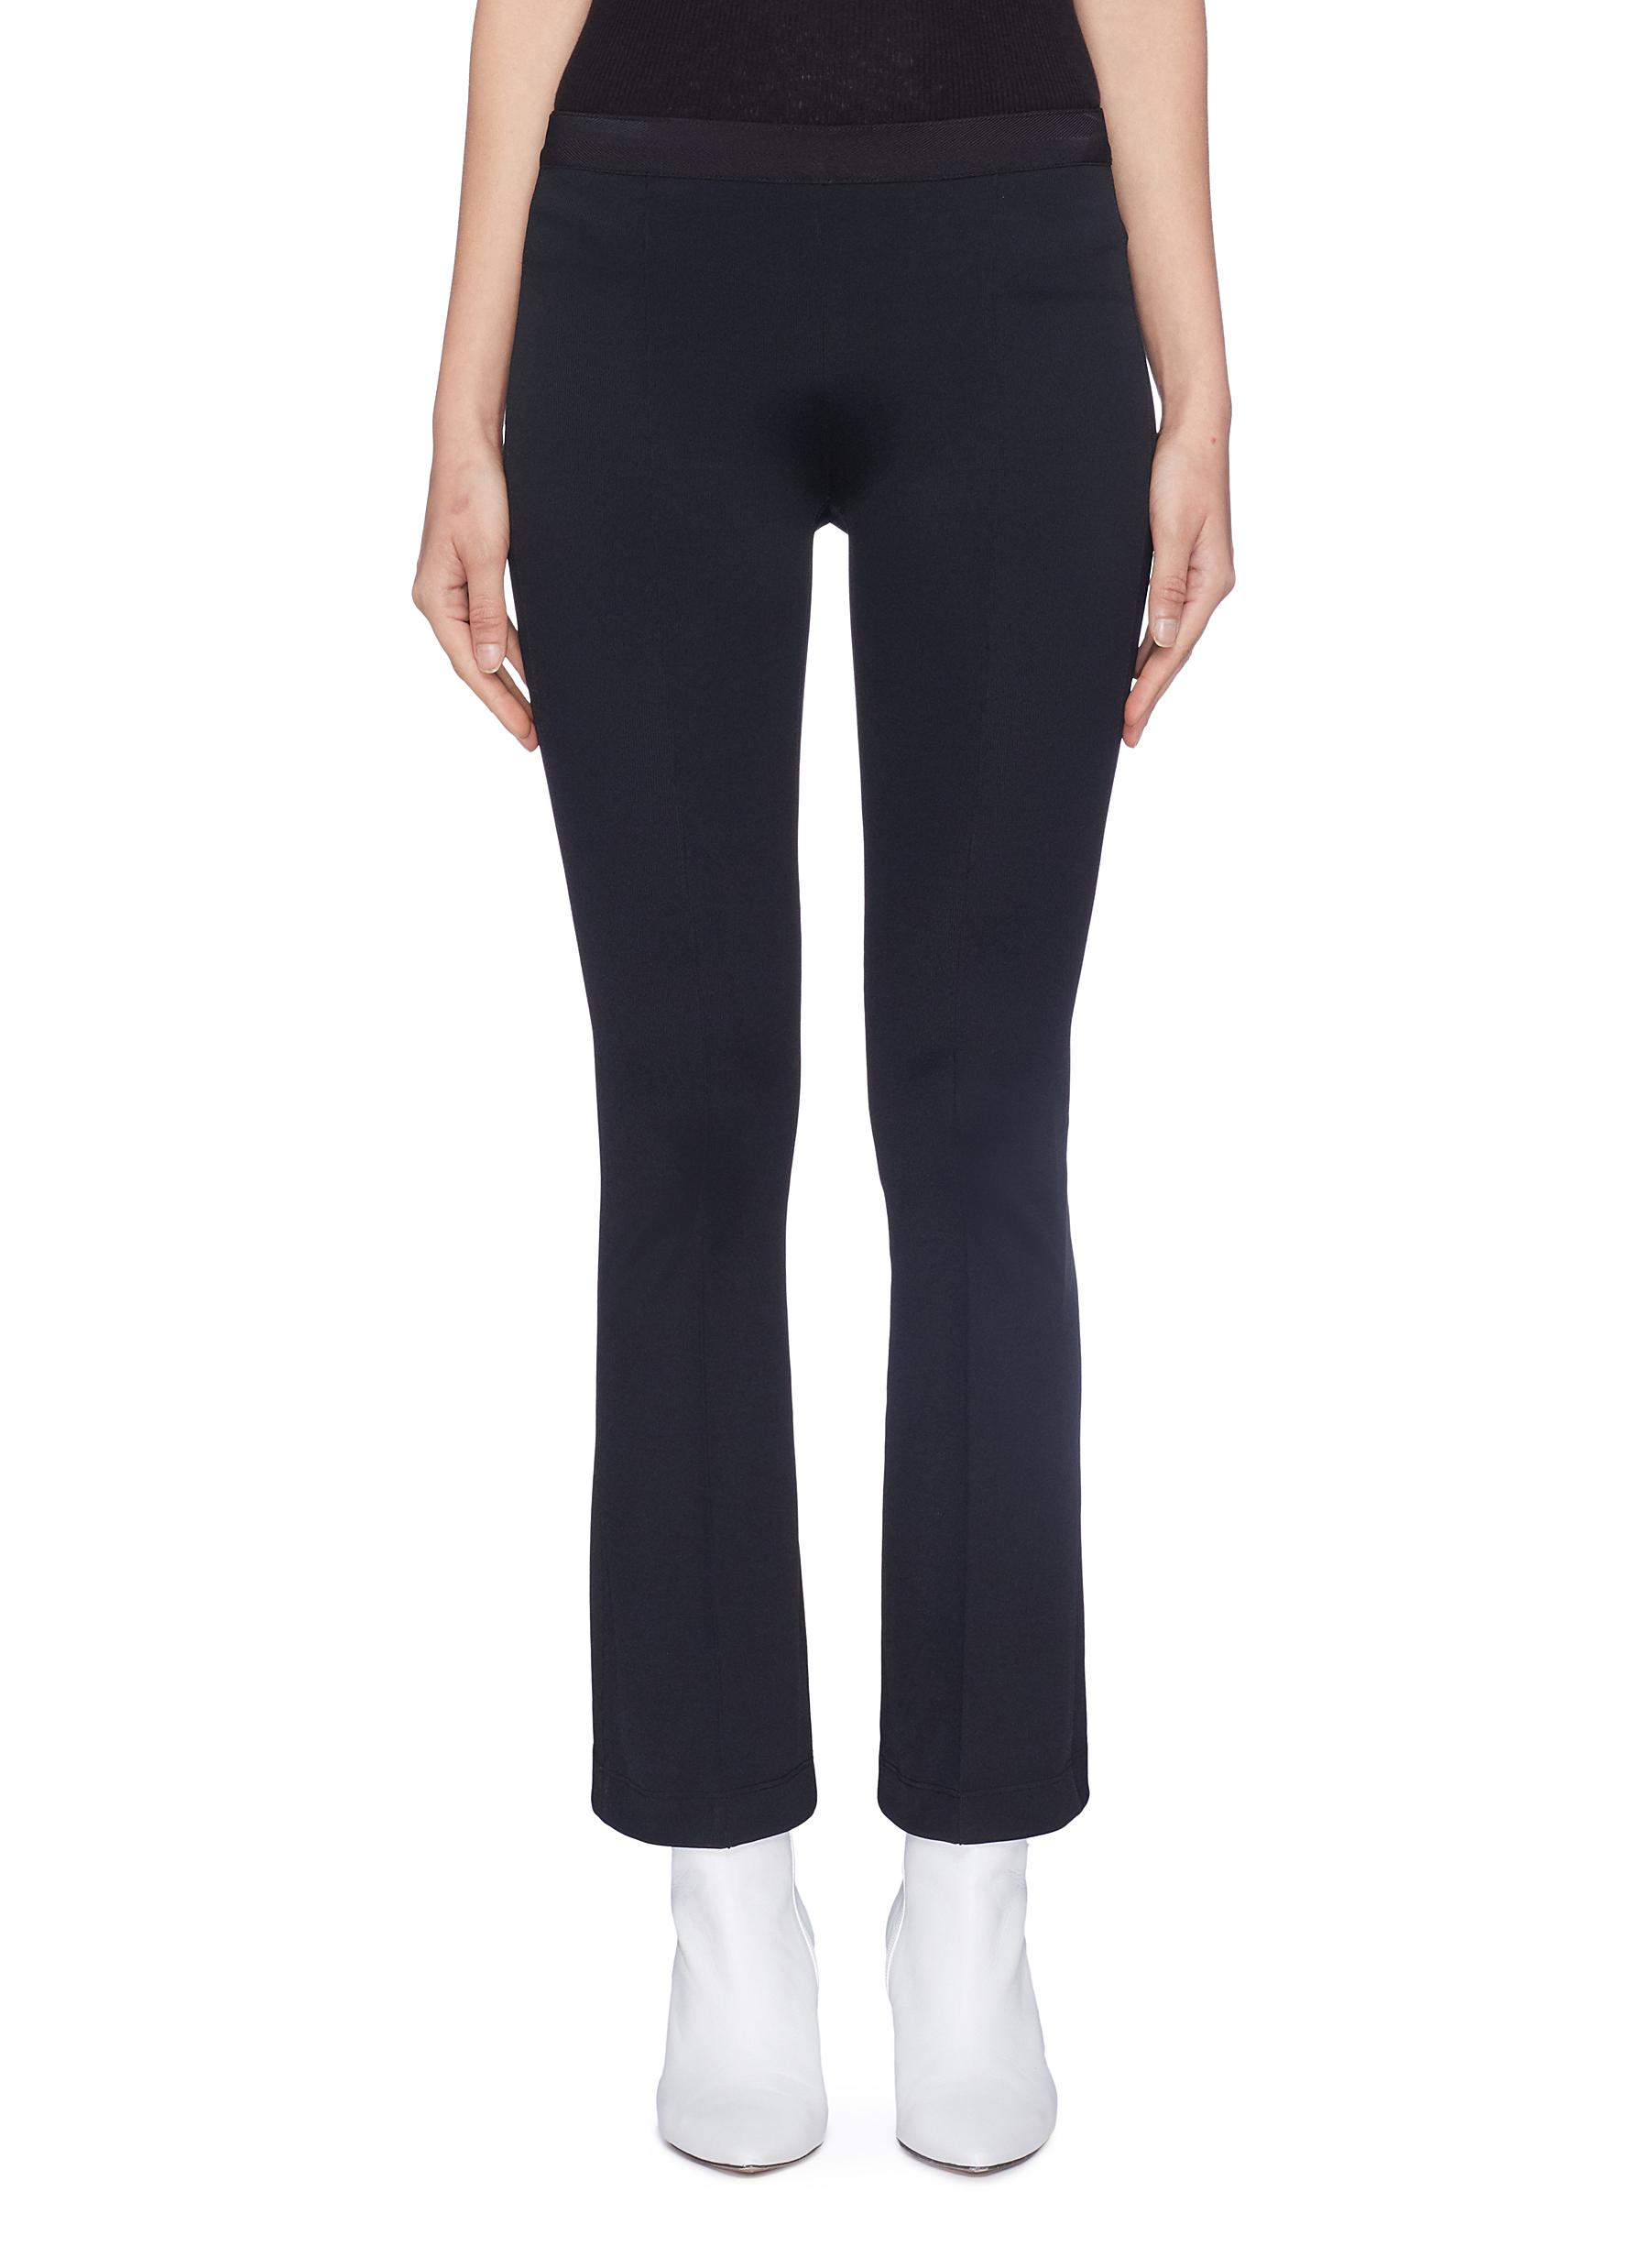 Cropped flared leggings by Helmut Lang